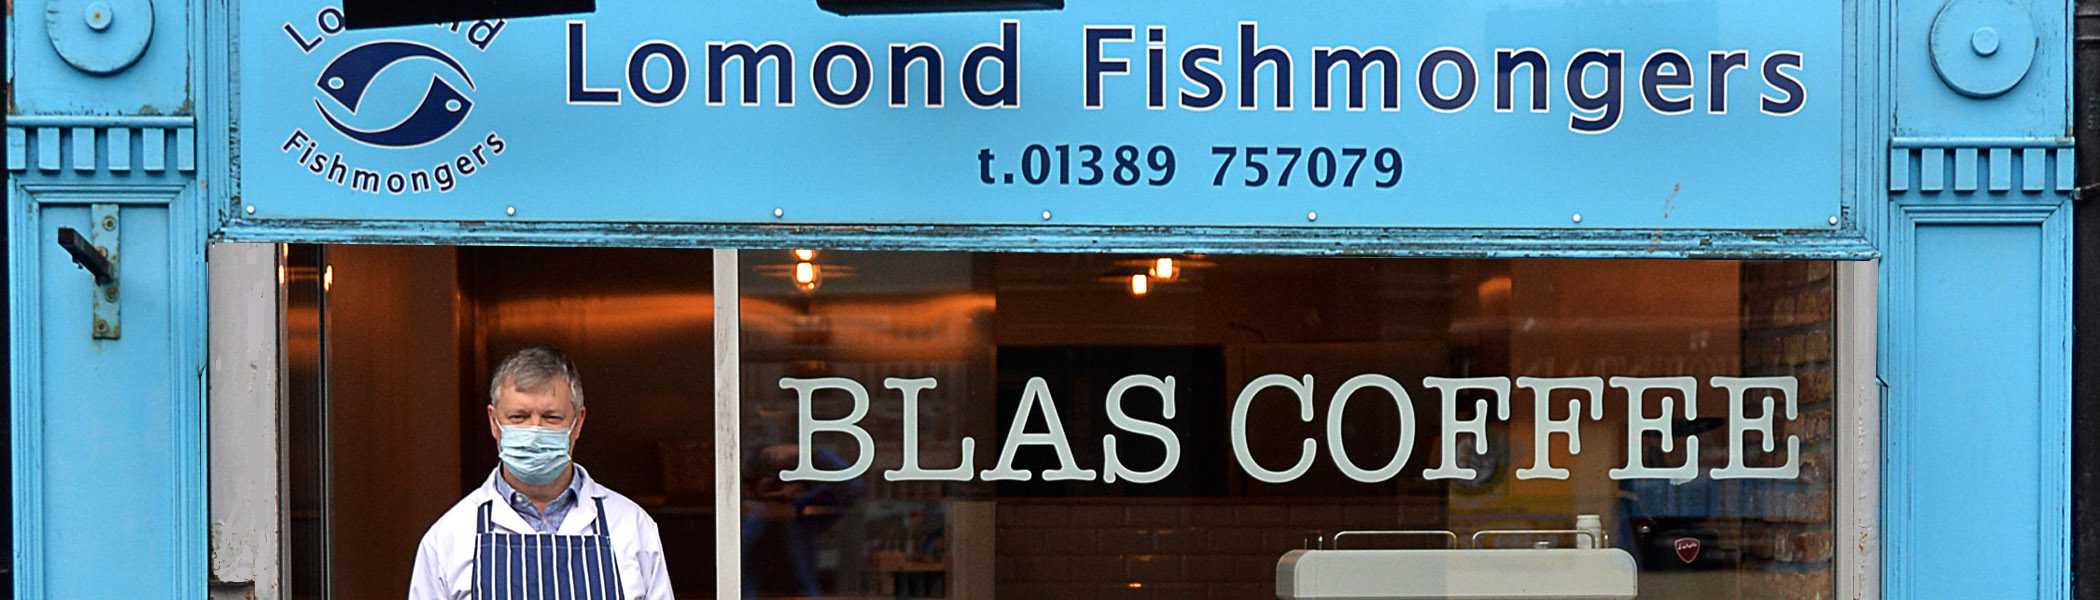 Fishmongers at  Heart of Community